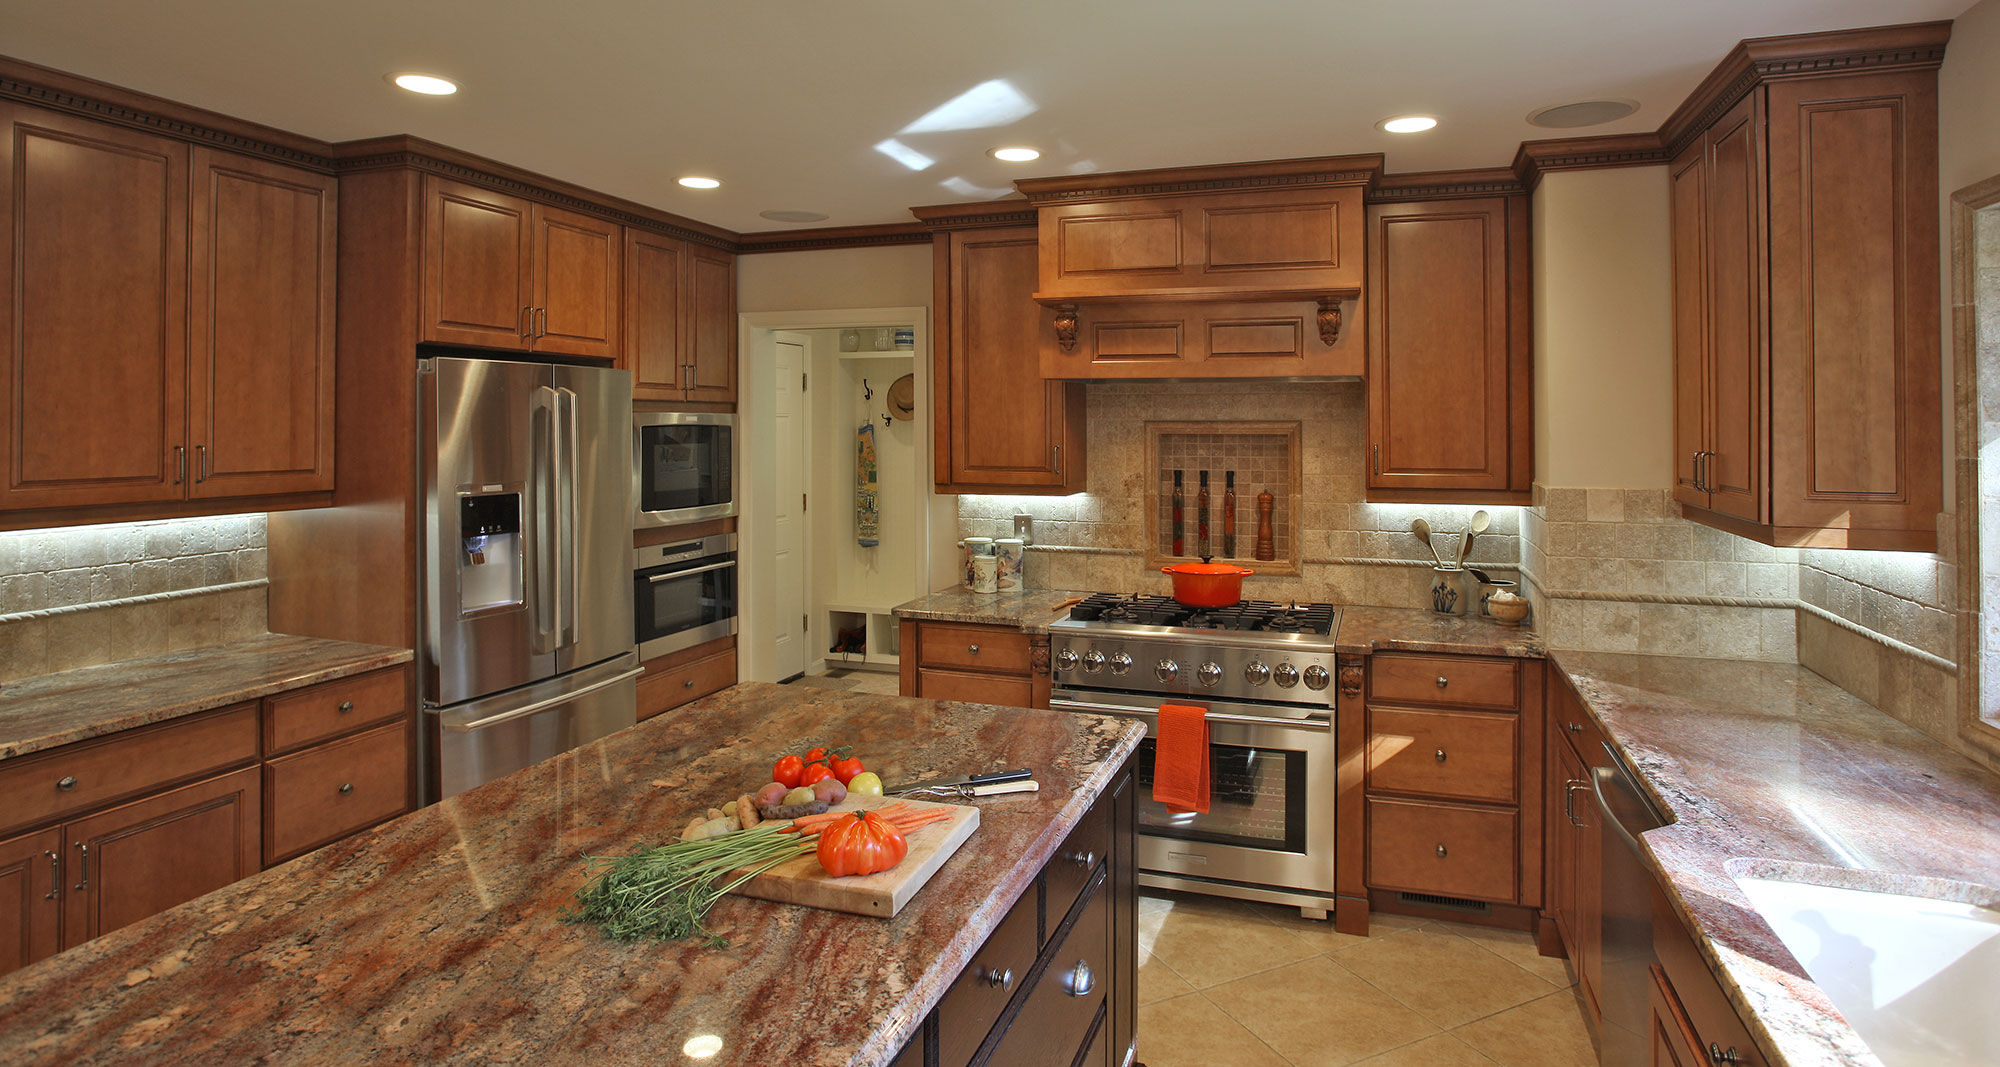 Kitchen Remodeling Northern Virginia Enchanting Kitchen And Bath Remodeling Serving Northern Virginia Maryland . Design Inspiration